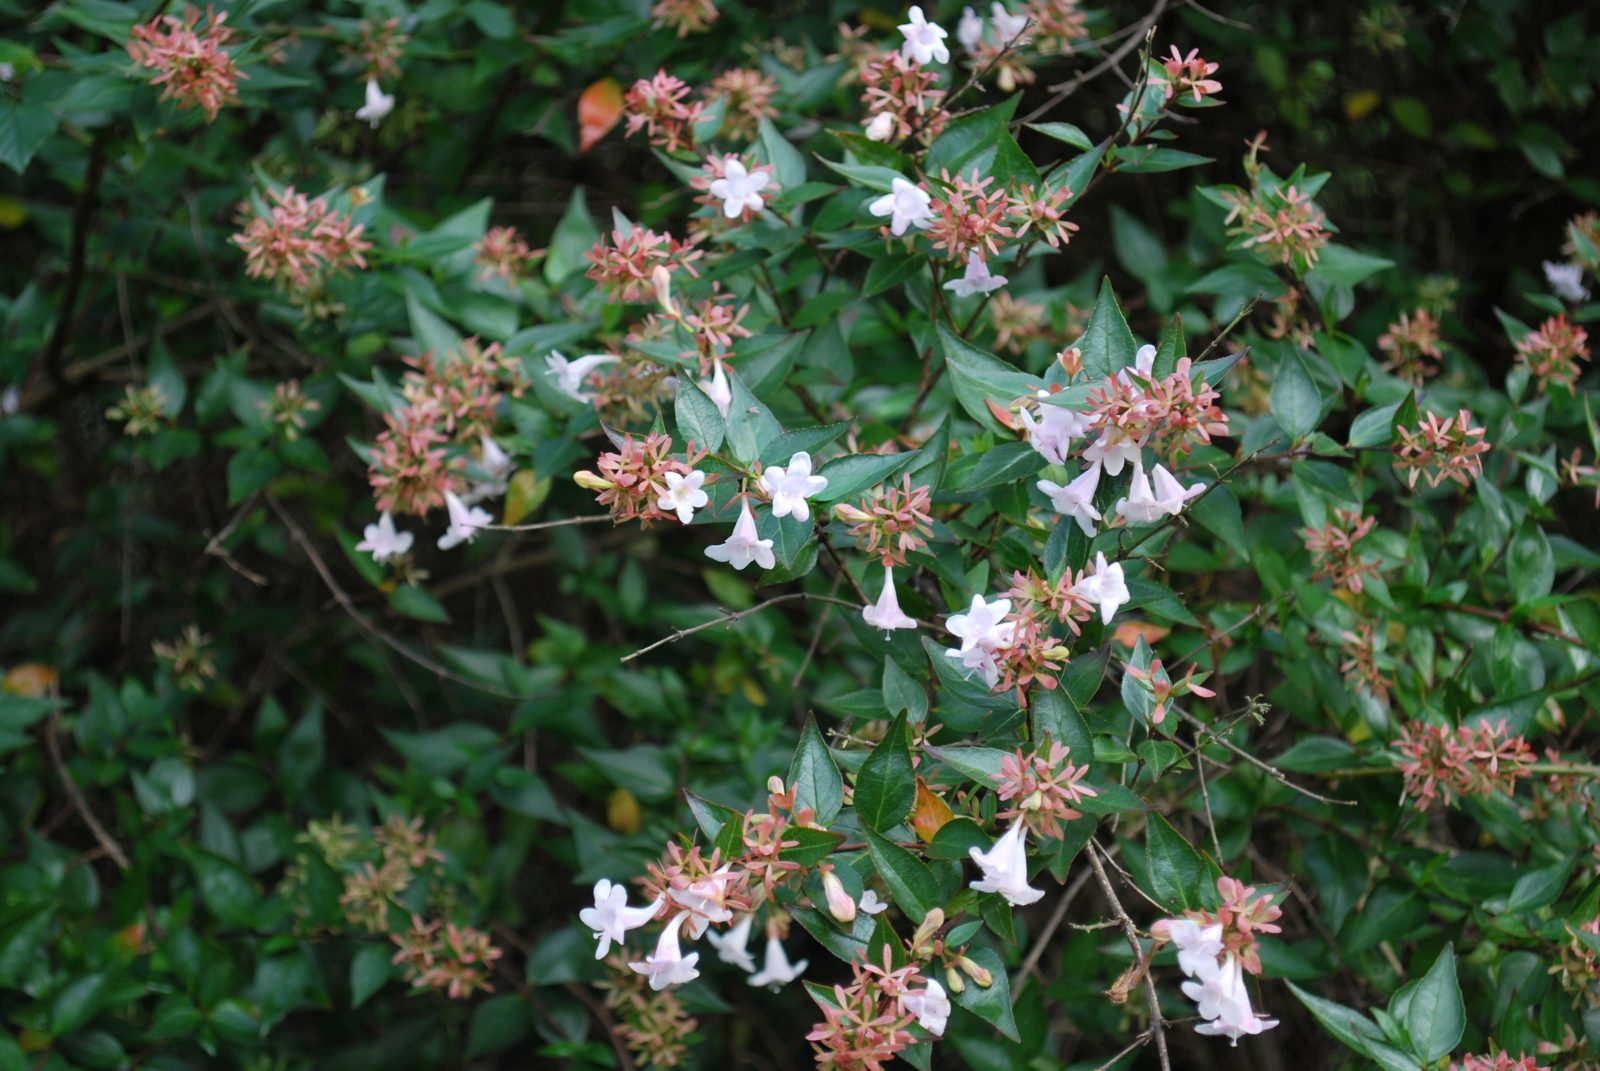 Abelia Grandiflora Garden Shrub For Sale Uk Letsgoplanting Couk